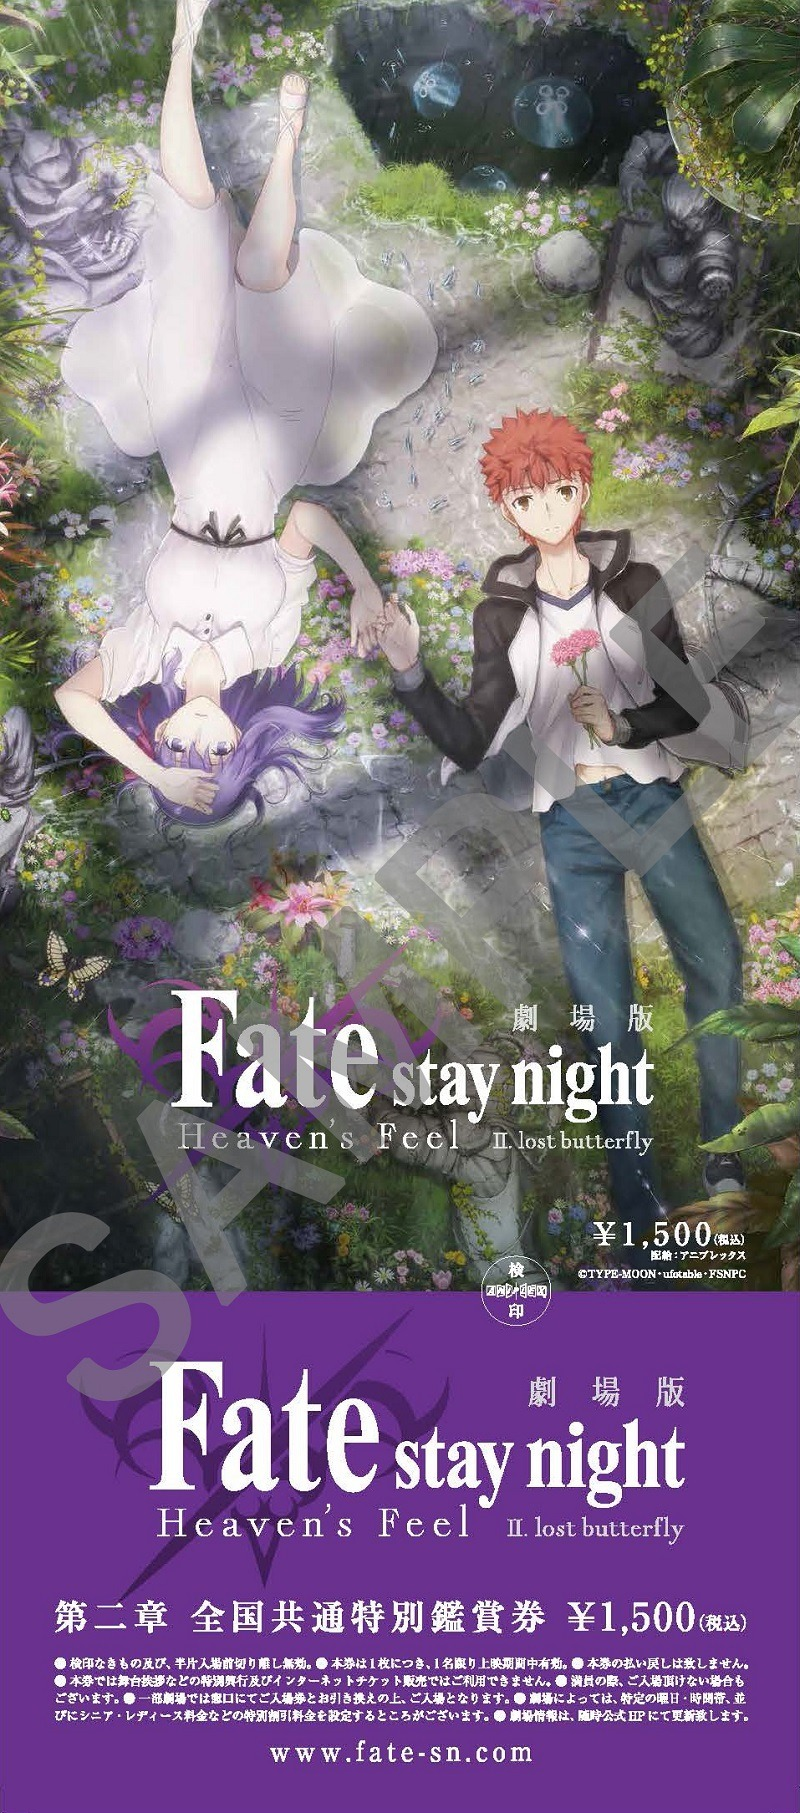 「『劇場版「Fate/stay night [Heaven's Feel]」II.lost butterfly』第1弾前売券」(C)TYPE-MOON・ufotable・FSNPC